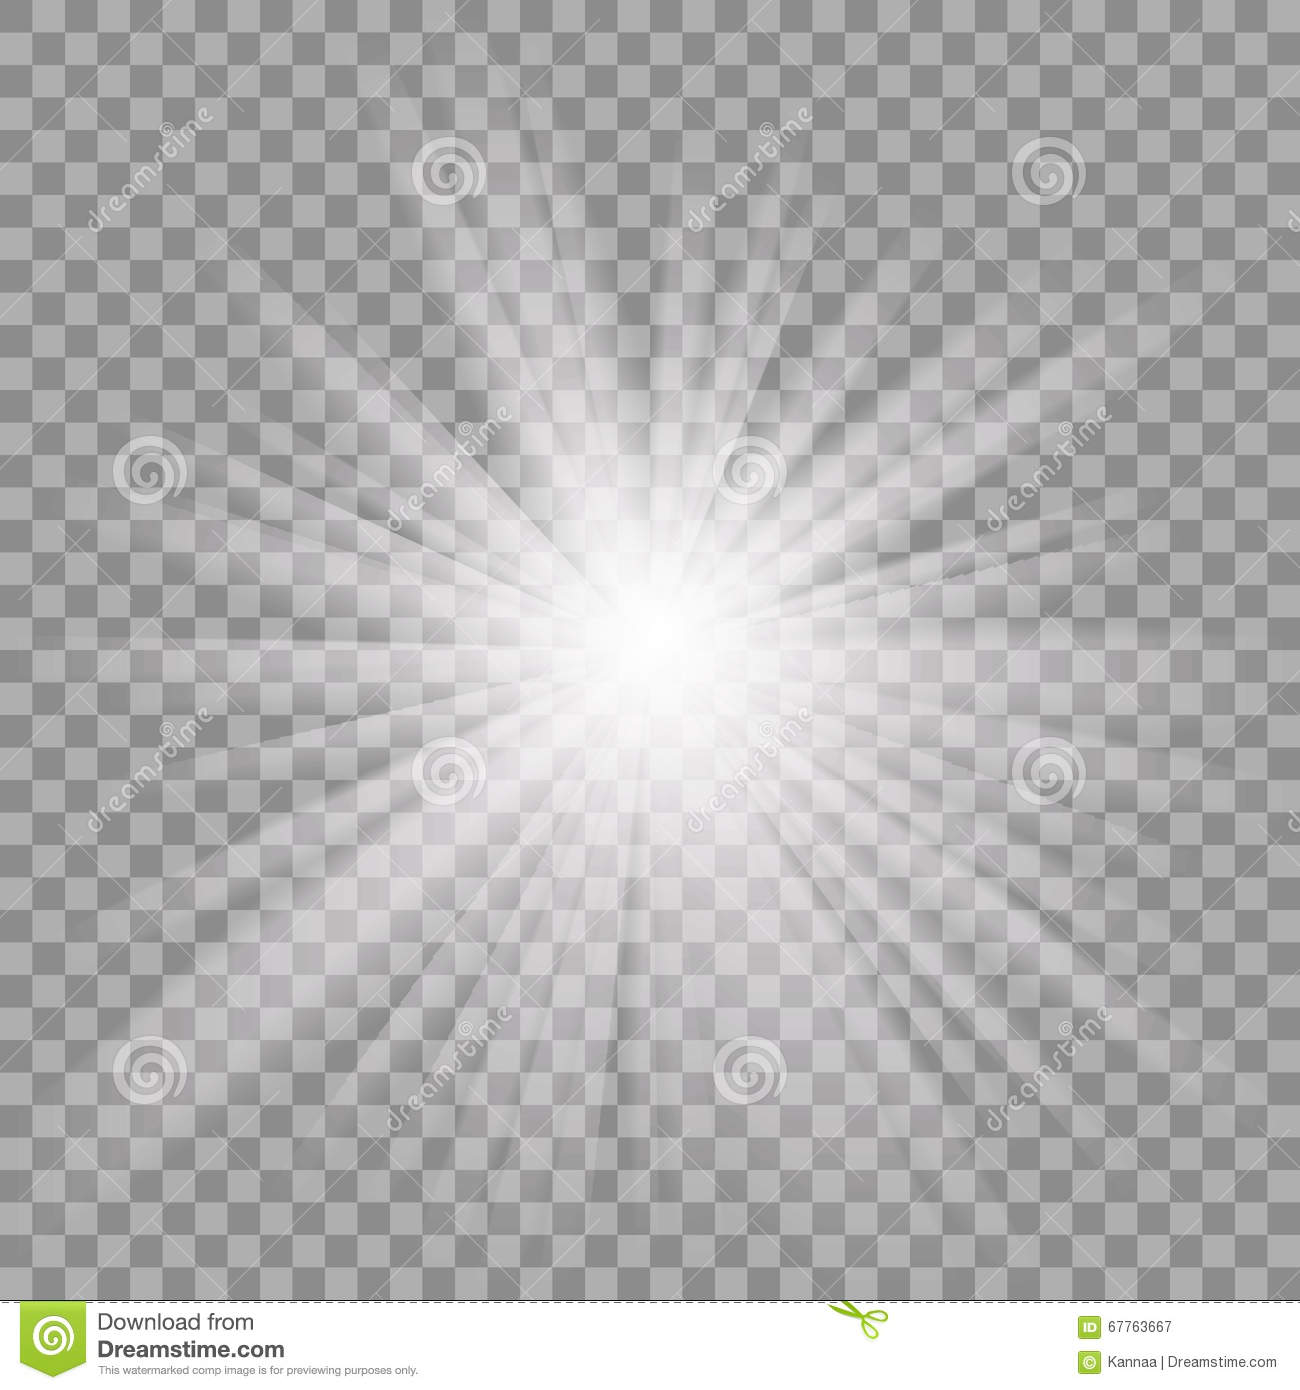 White Glowing Light Burst On Transparent Background. Stock Vector ... for Light Effects White Background  111bof